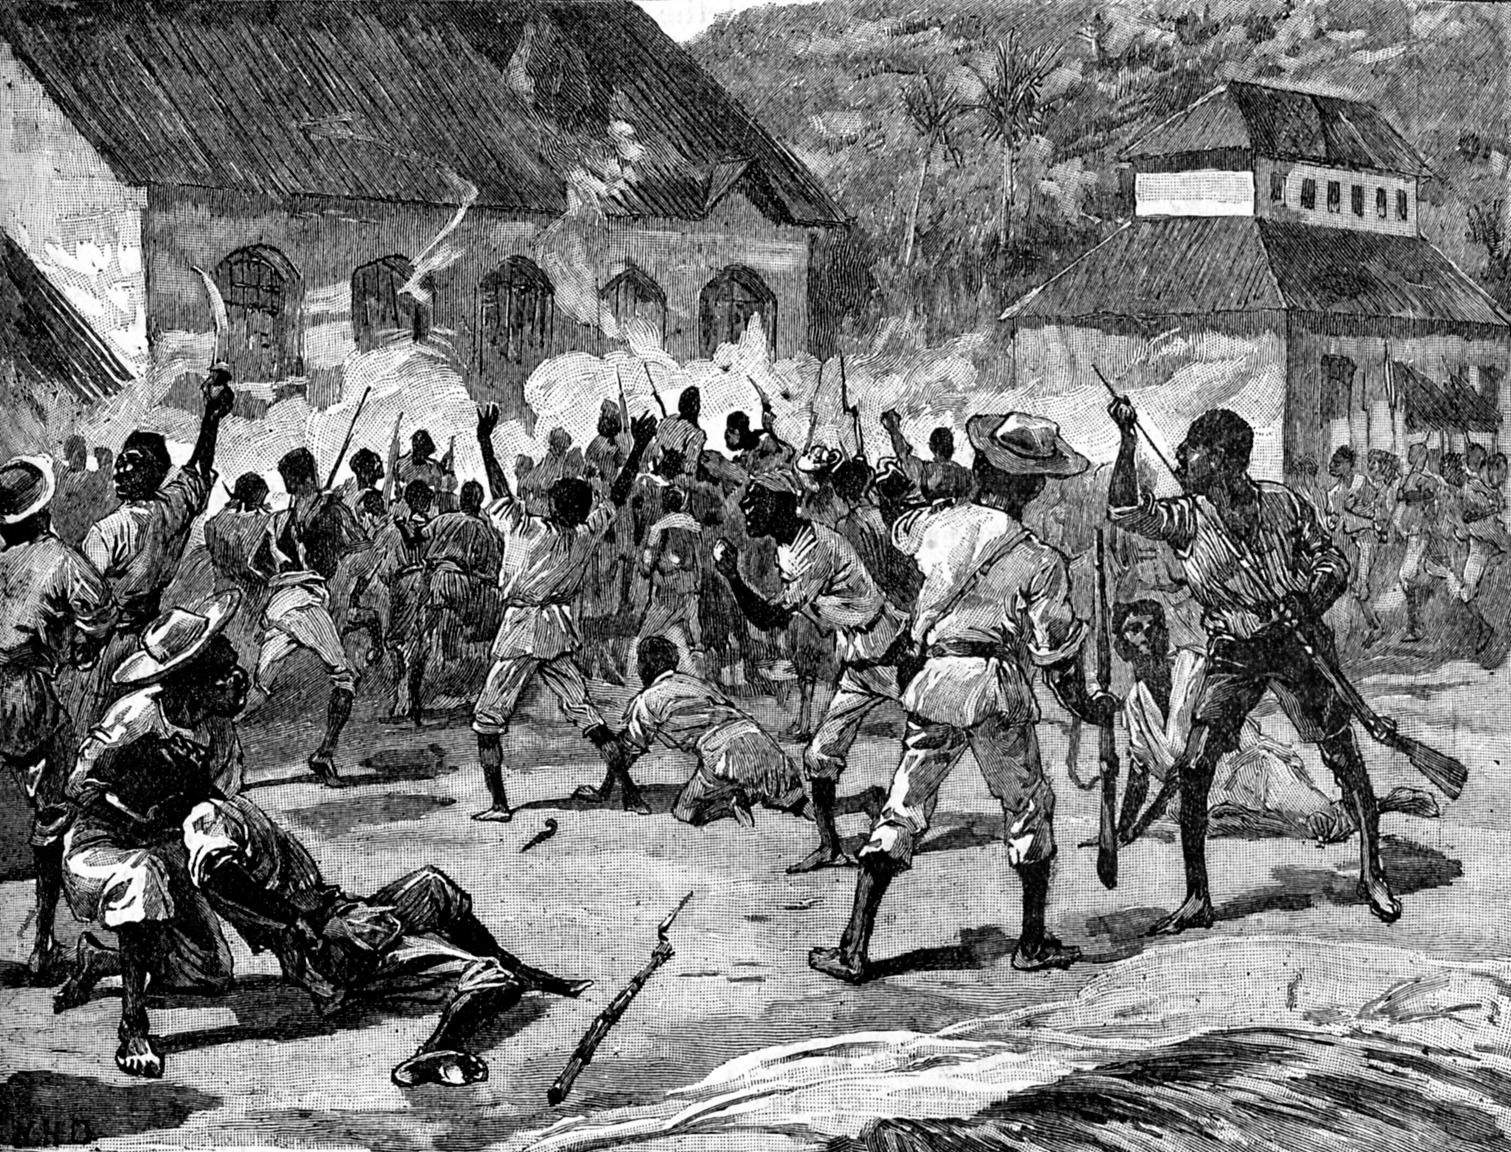 An illustration of the Morant Bay Rebellion of 1865